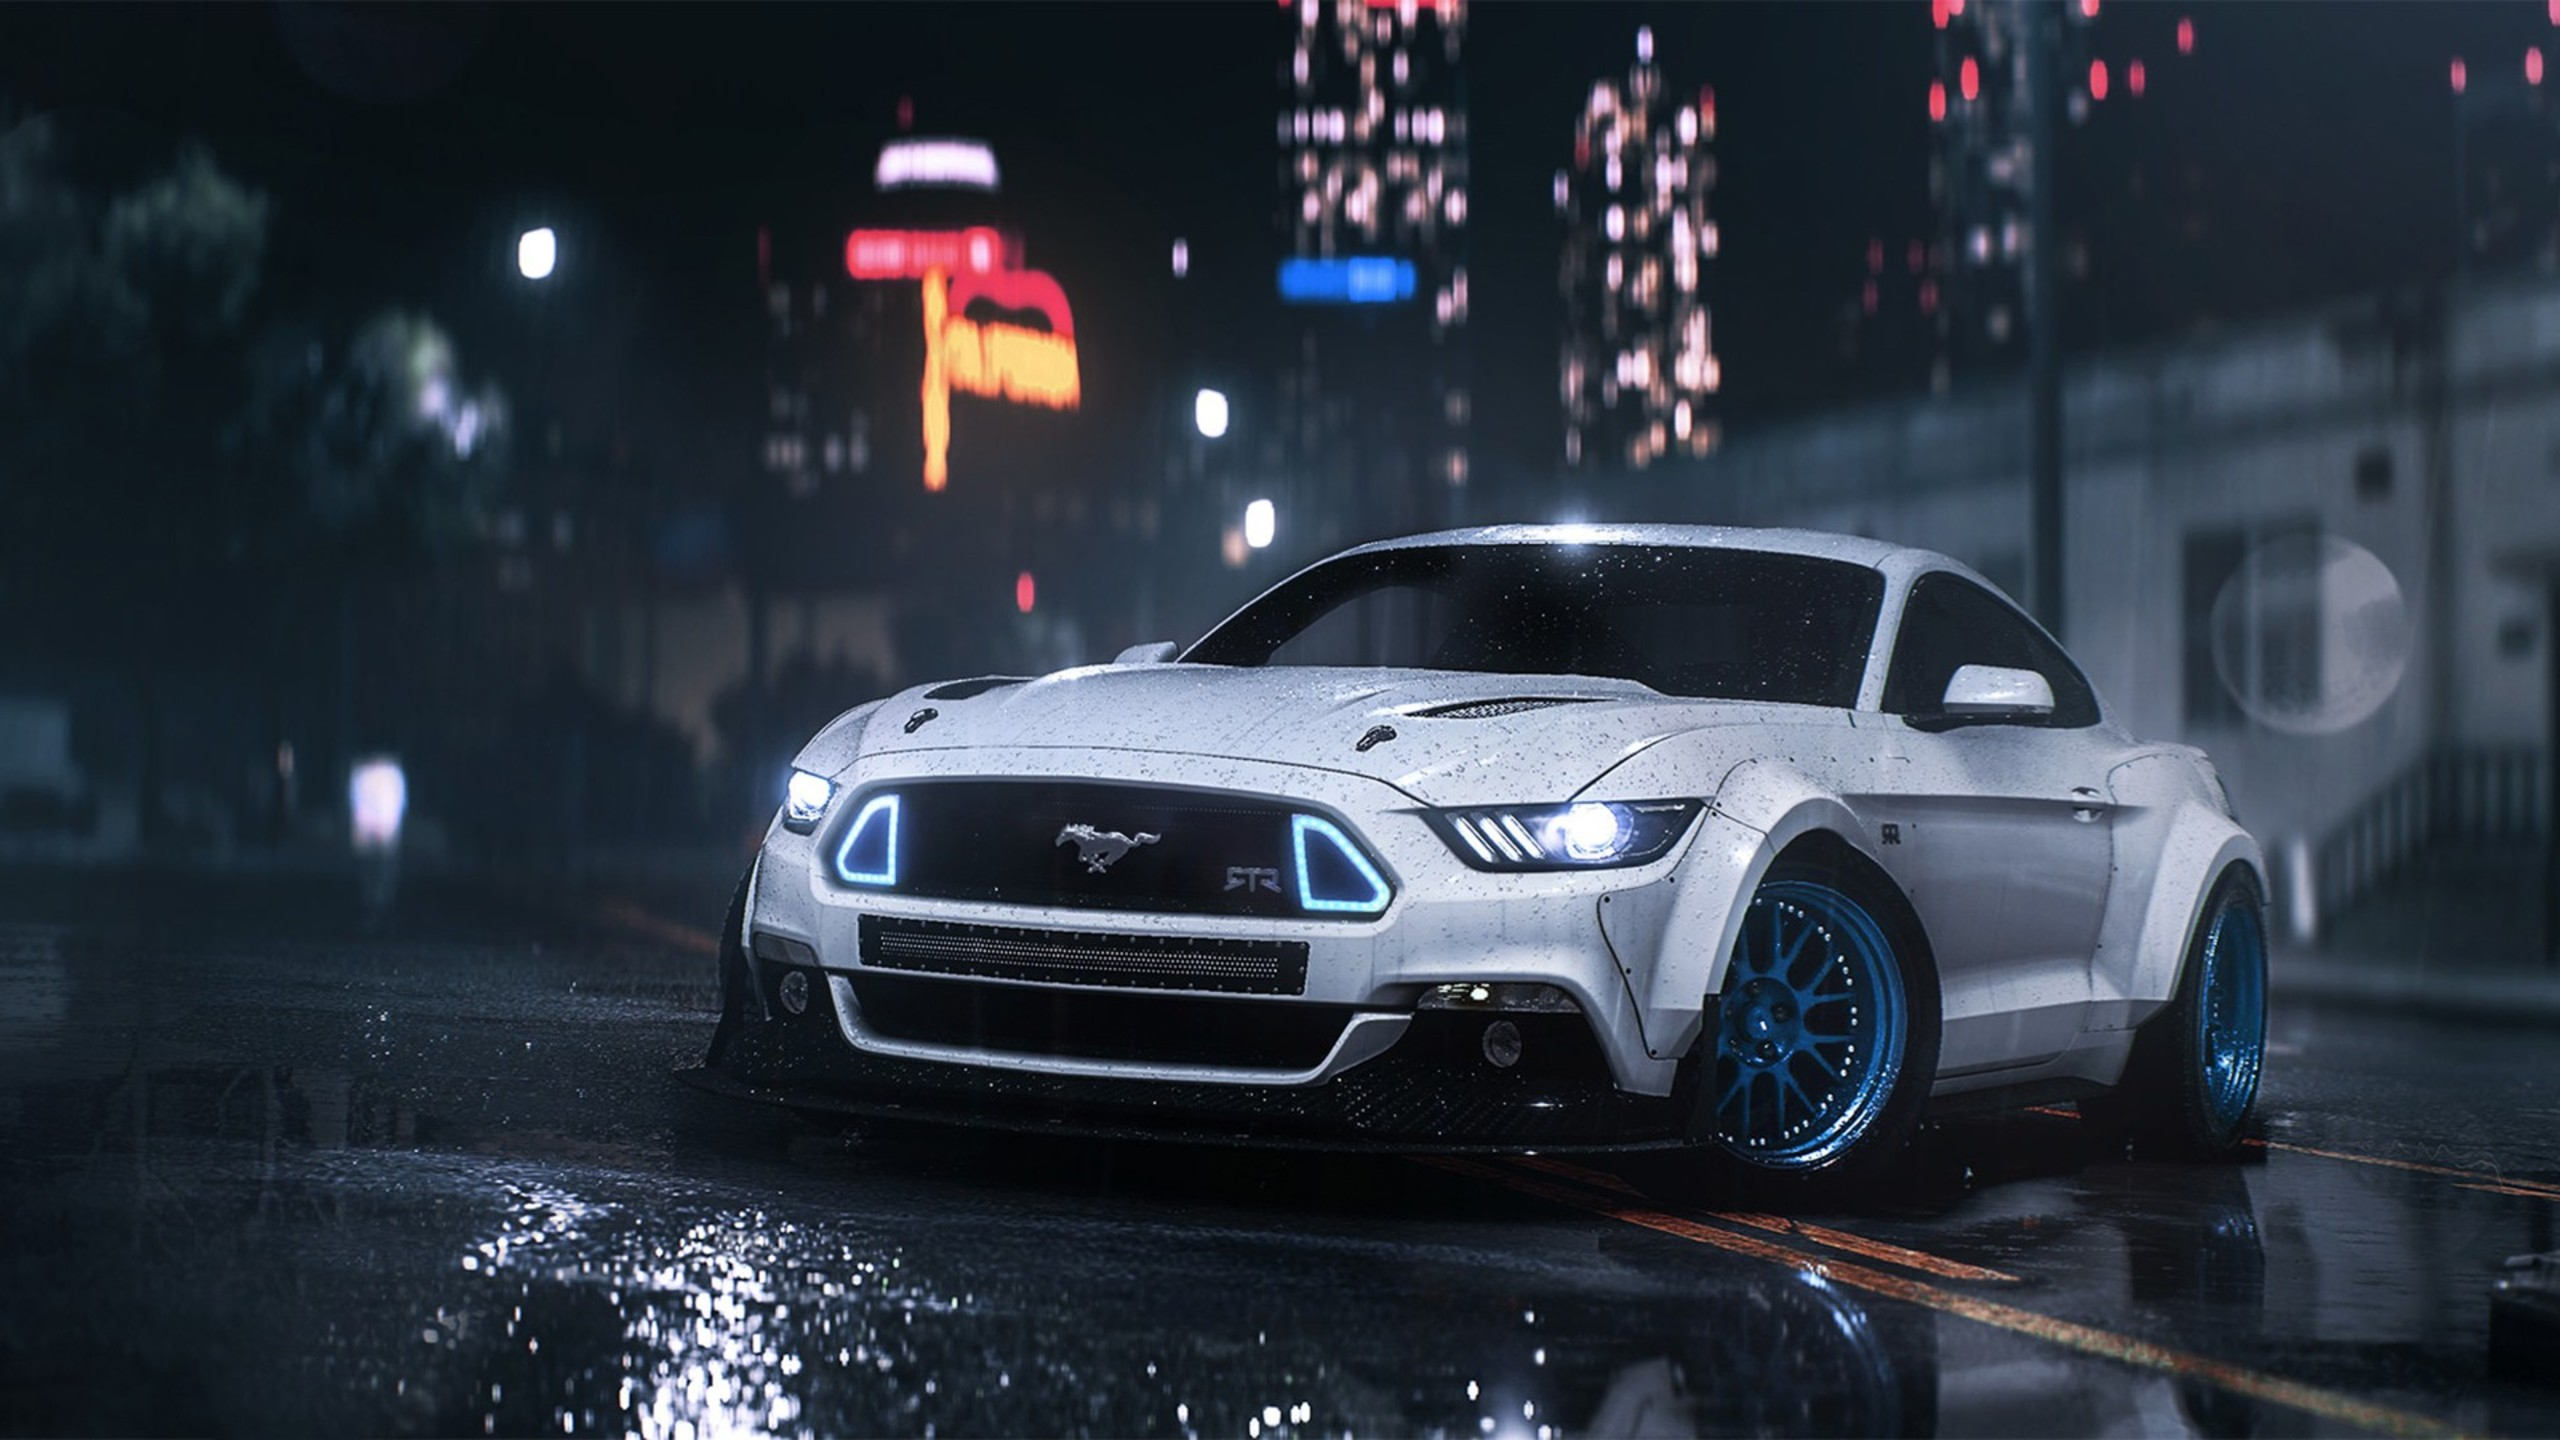 Mustang Need For Speed Payback Hd Cars 4k Wallpapers